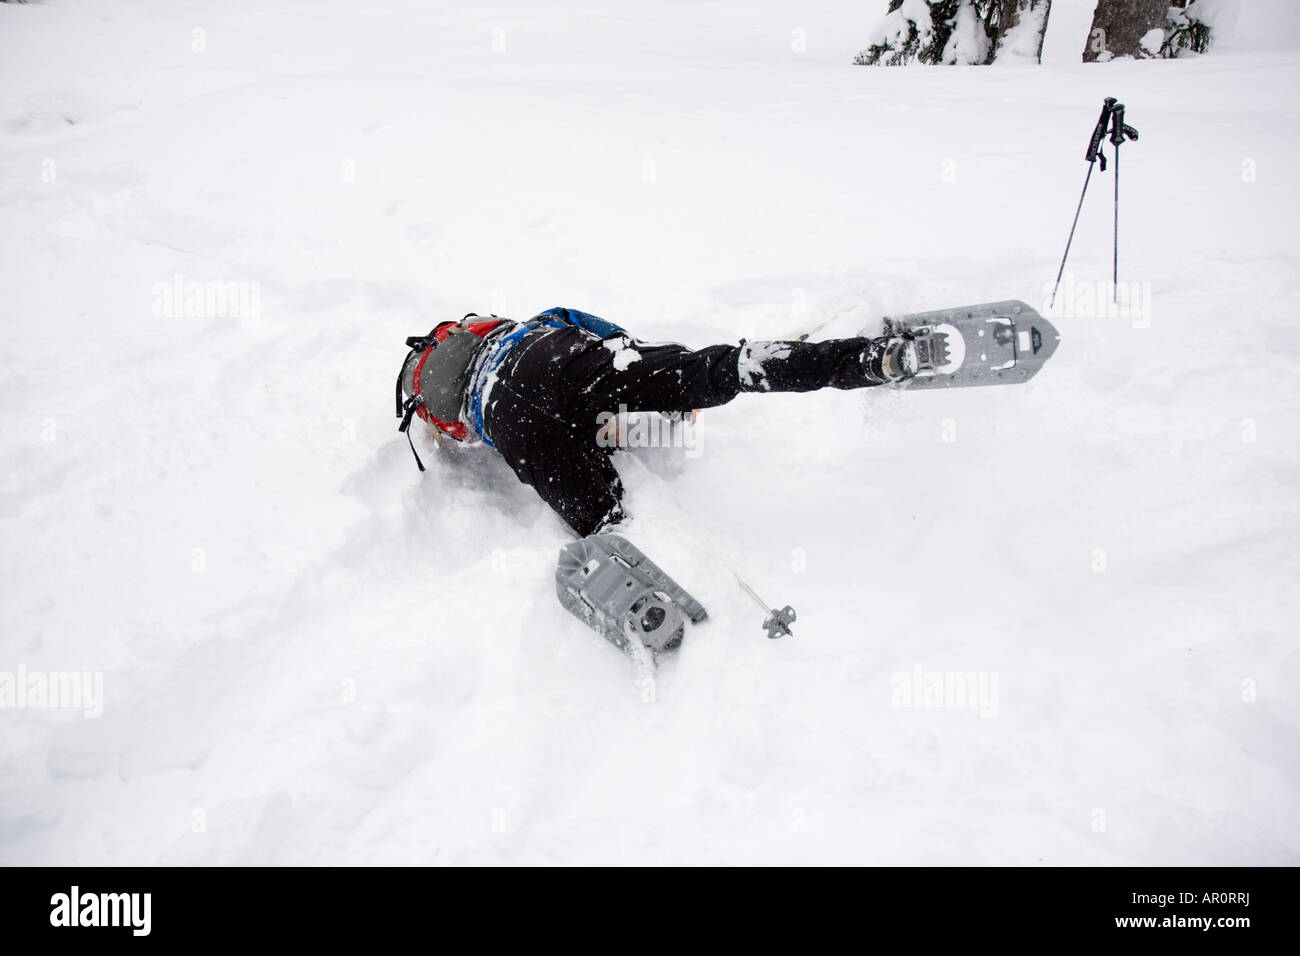 A snowshoer falls down into the snow. - Stock Image